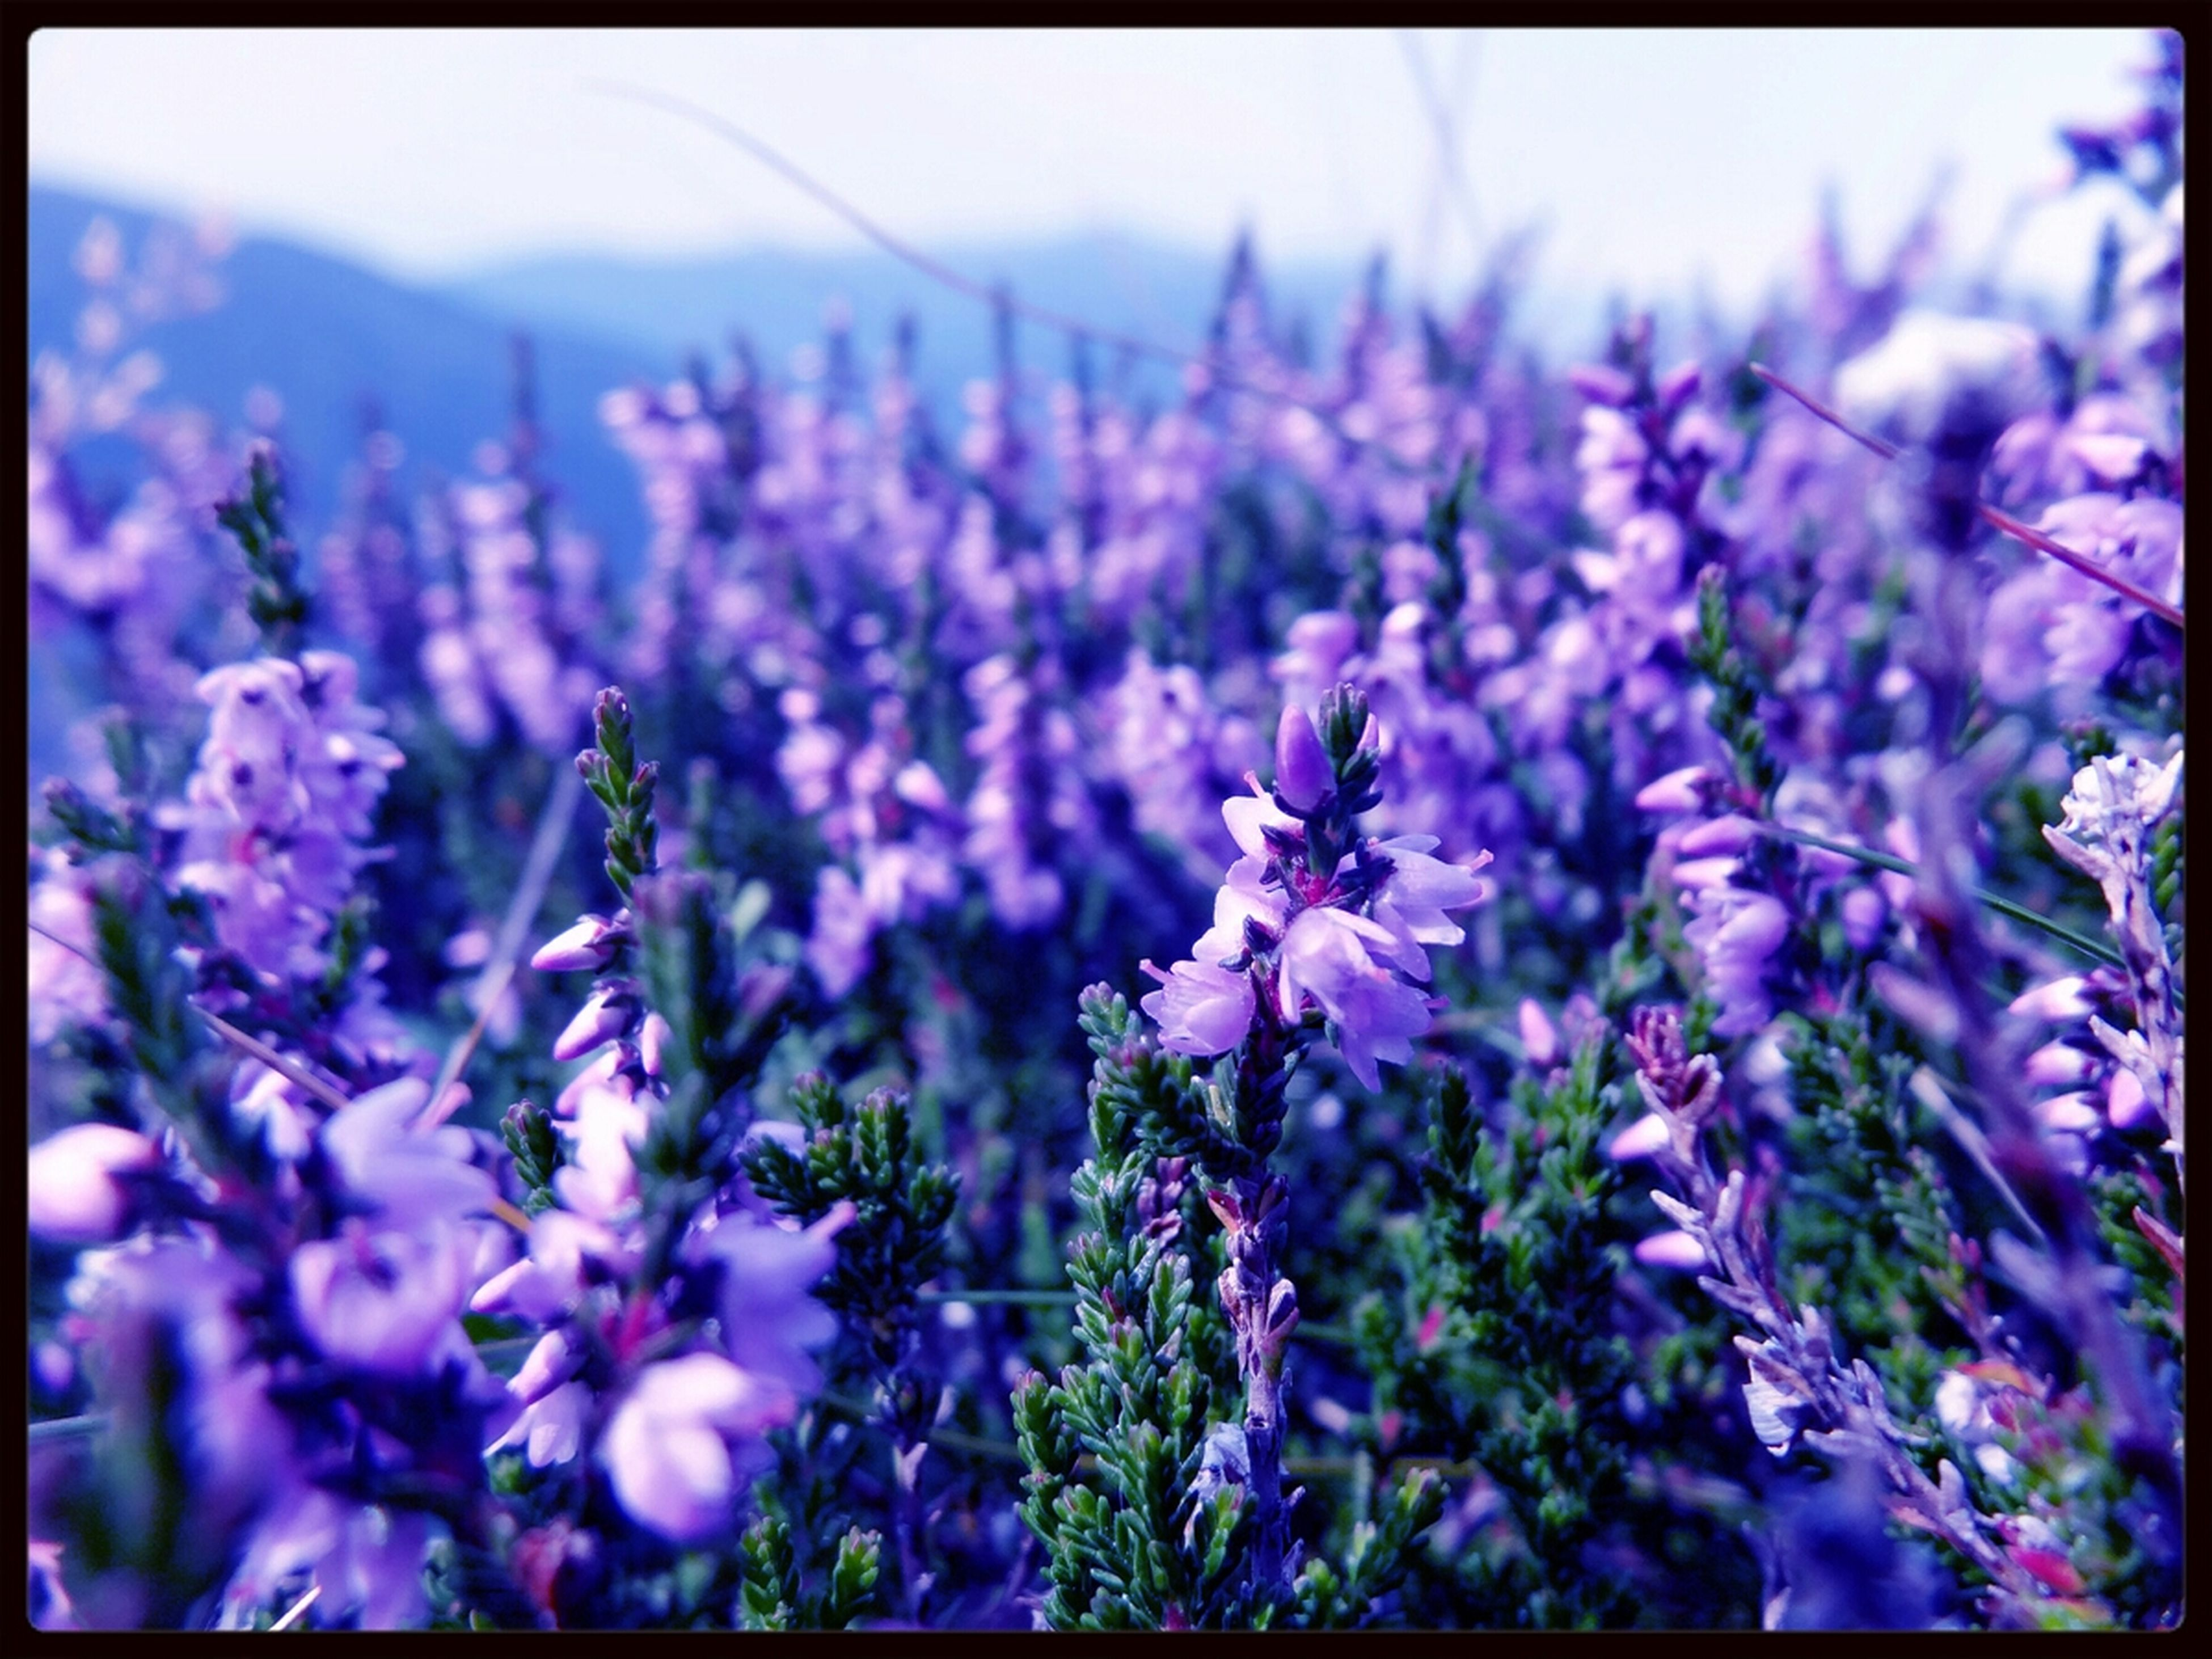 flower, freshness, fragility, transfer print, growth, purple, beauty in nature, petal, auto post production filter, focus on foreground, nature, flower head, blooming, close-up, plant, in bloom, selective focus, blossom, stem, outdoors